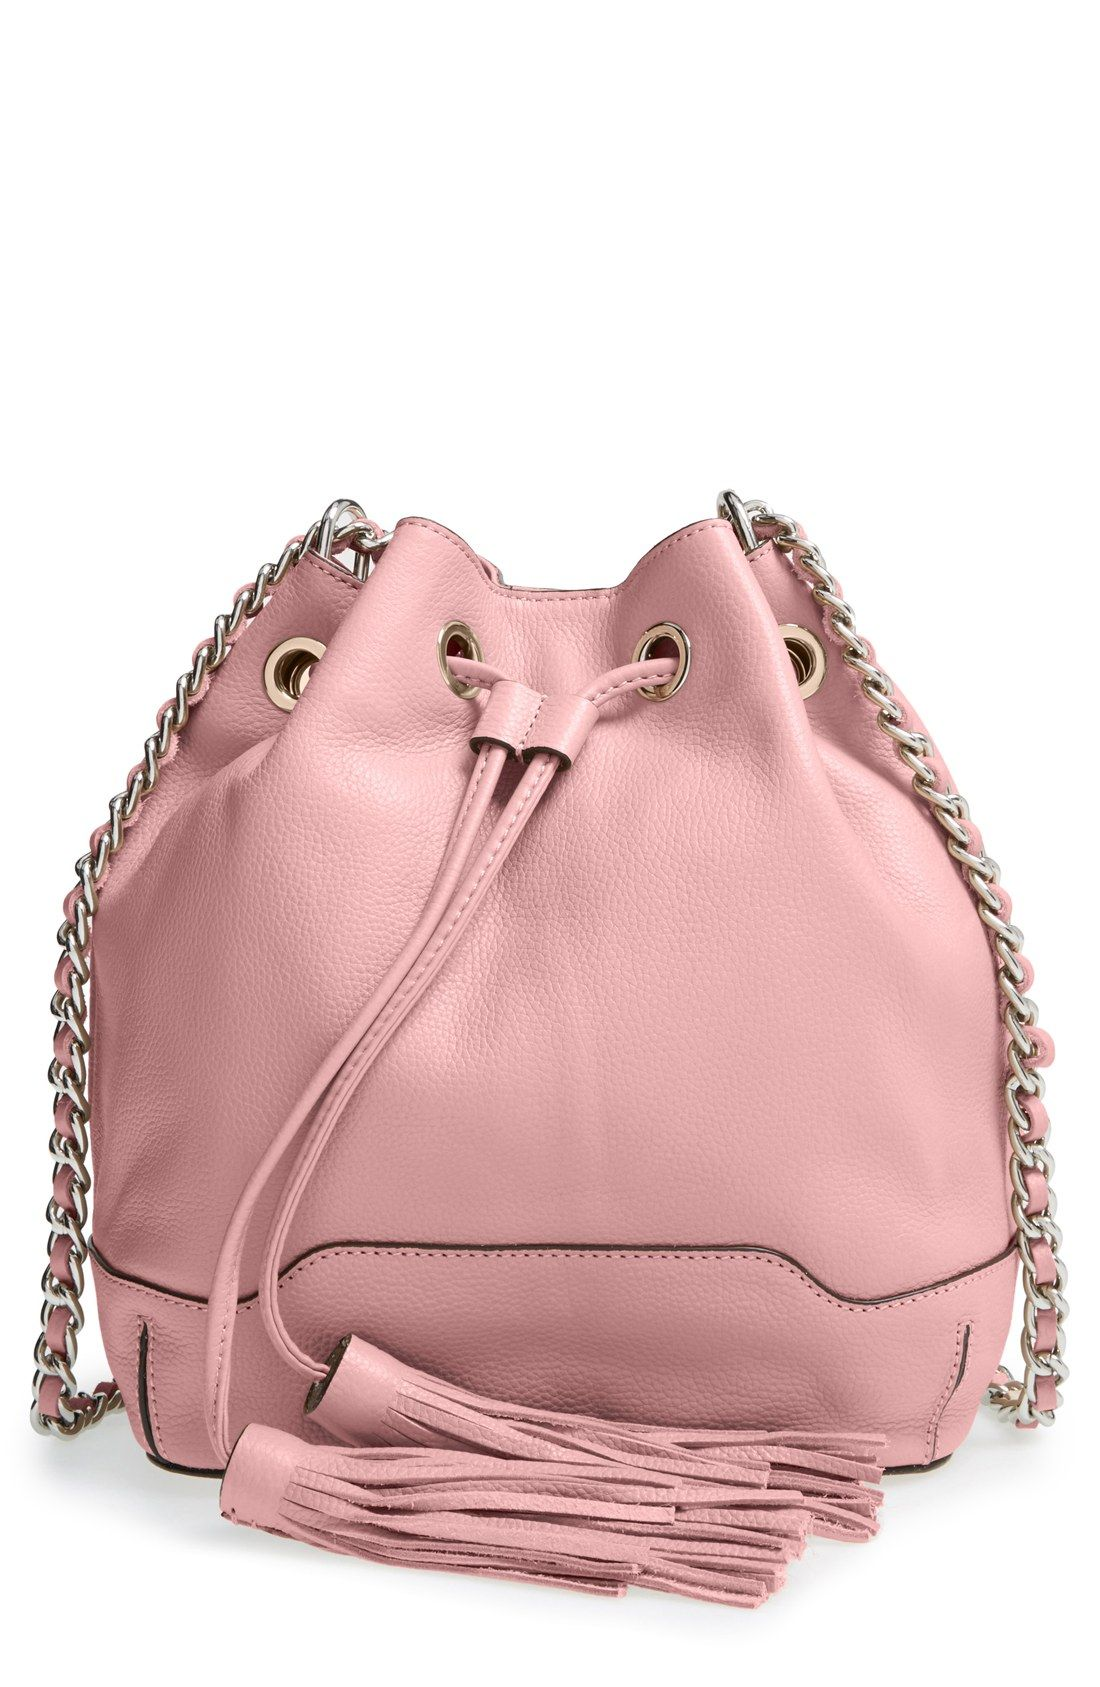 4eac8236918 Pin by logan on b a g s | Pinterest | Bags, Bucket Bag and Nordstrom